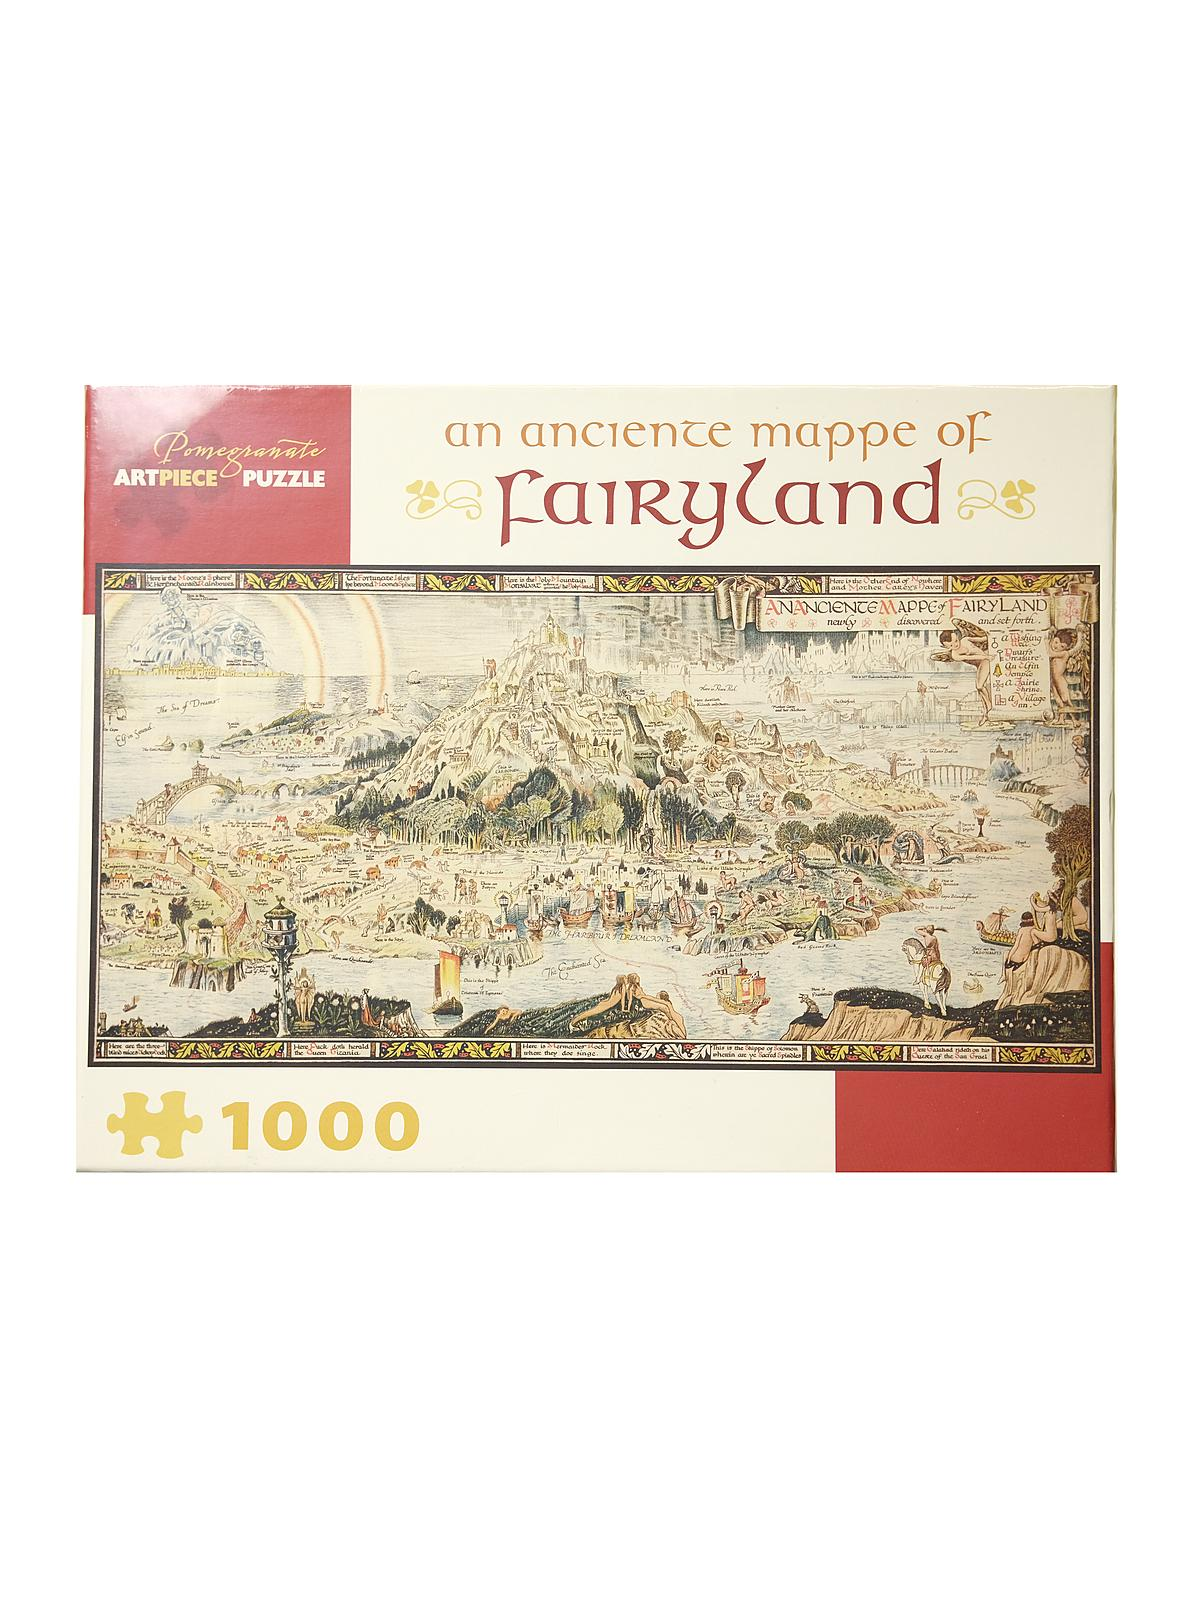 1000-piece Jigsaw Puzzles An Ancient Mappe Of Fairyland